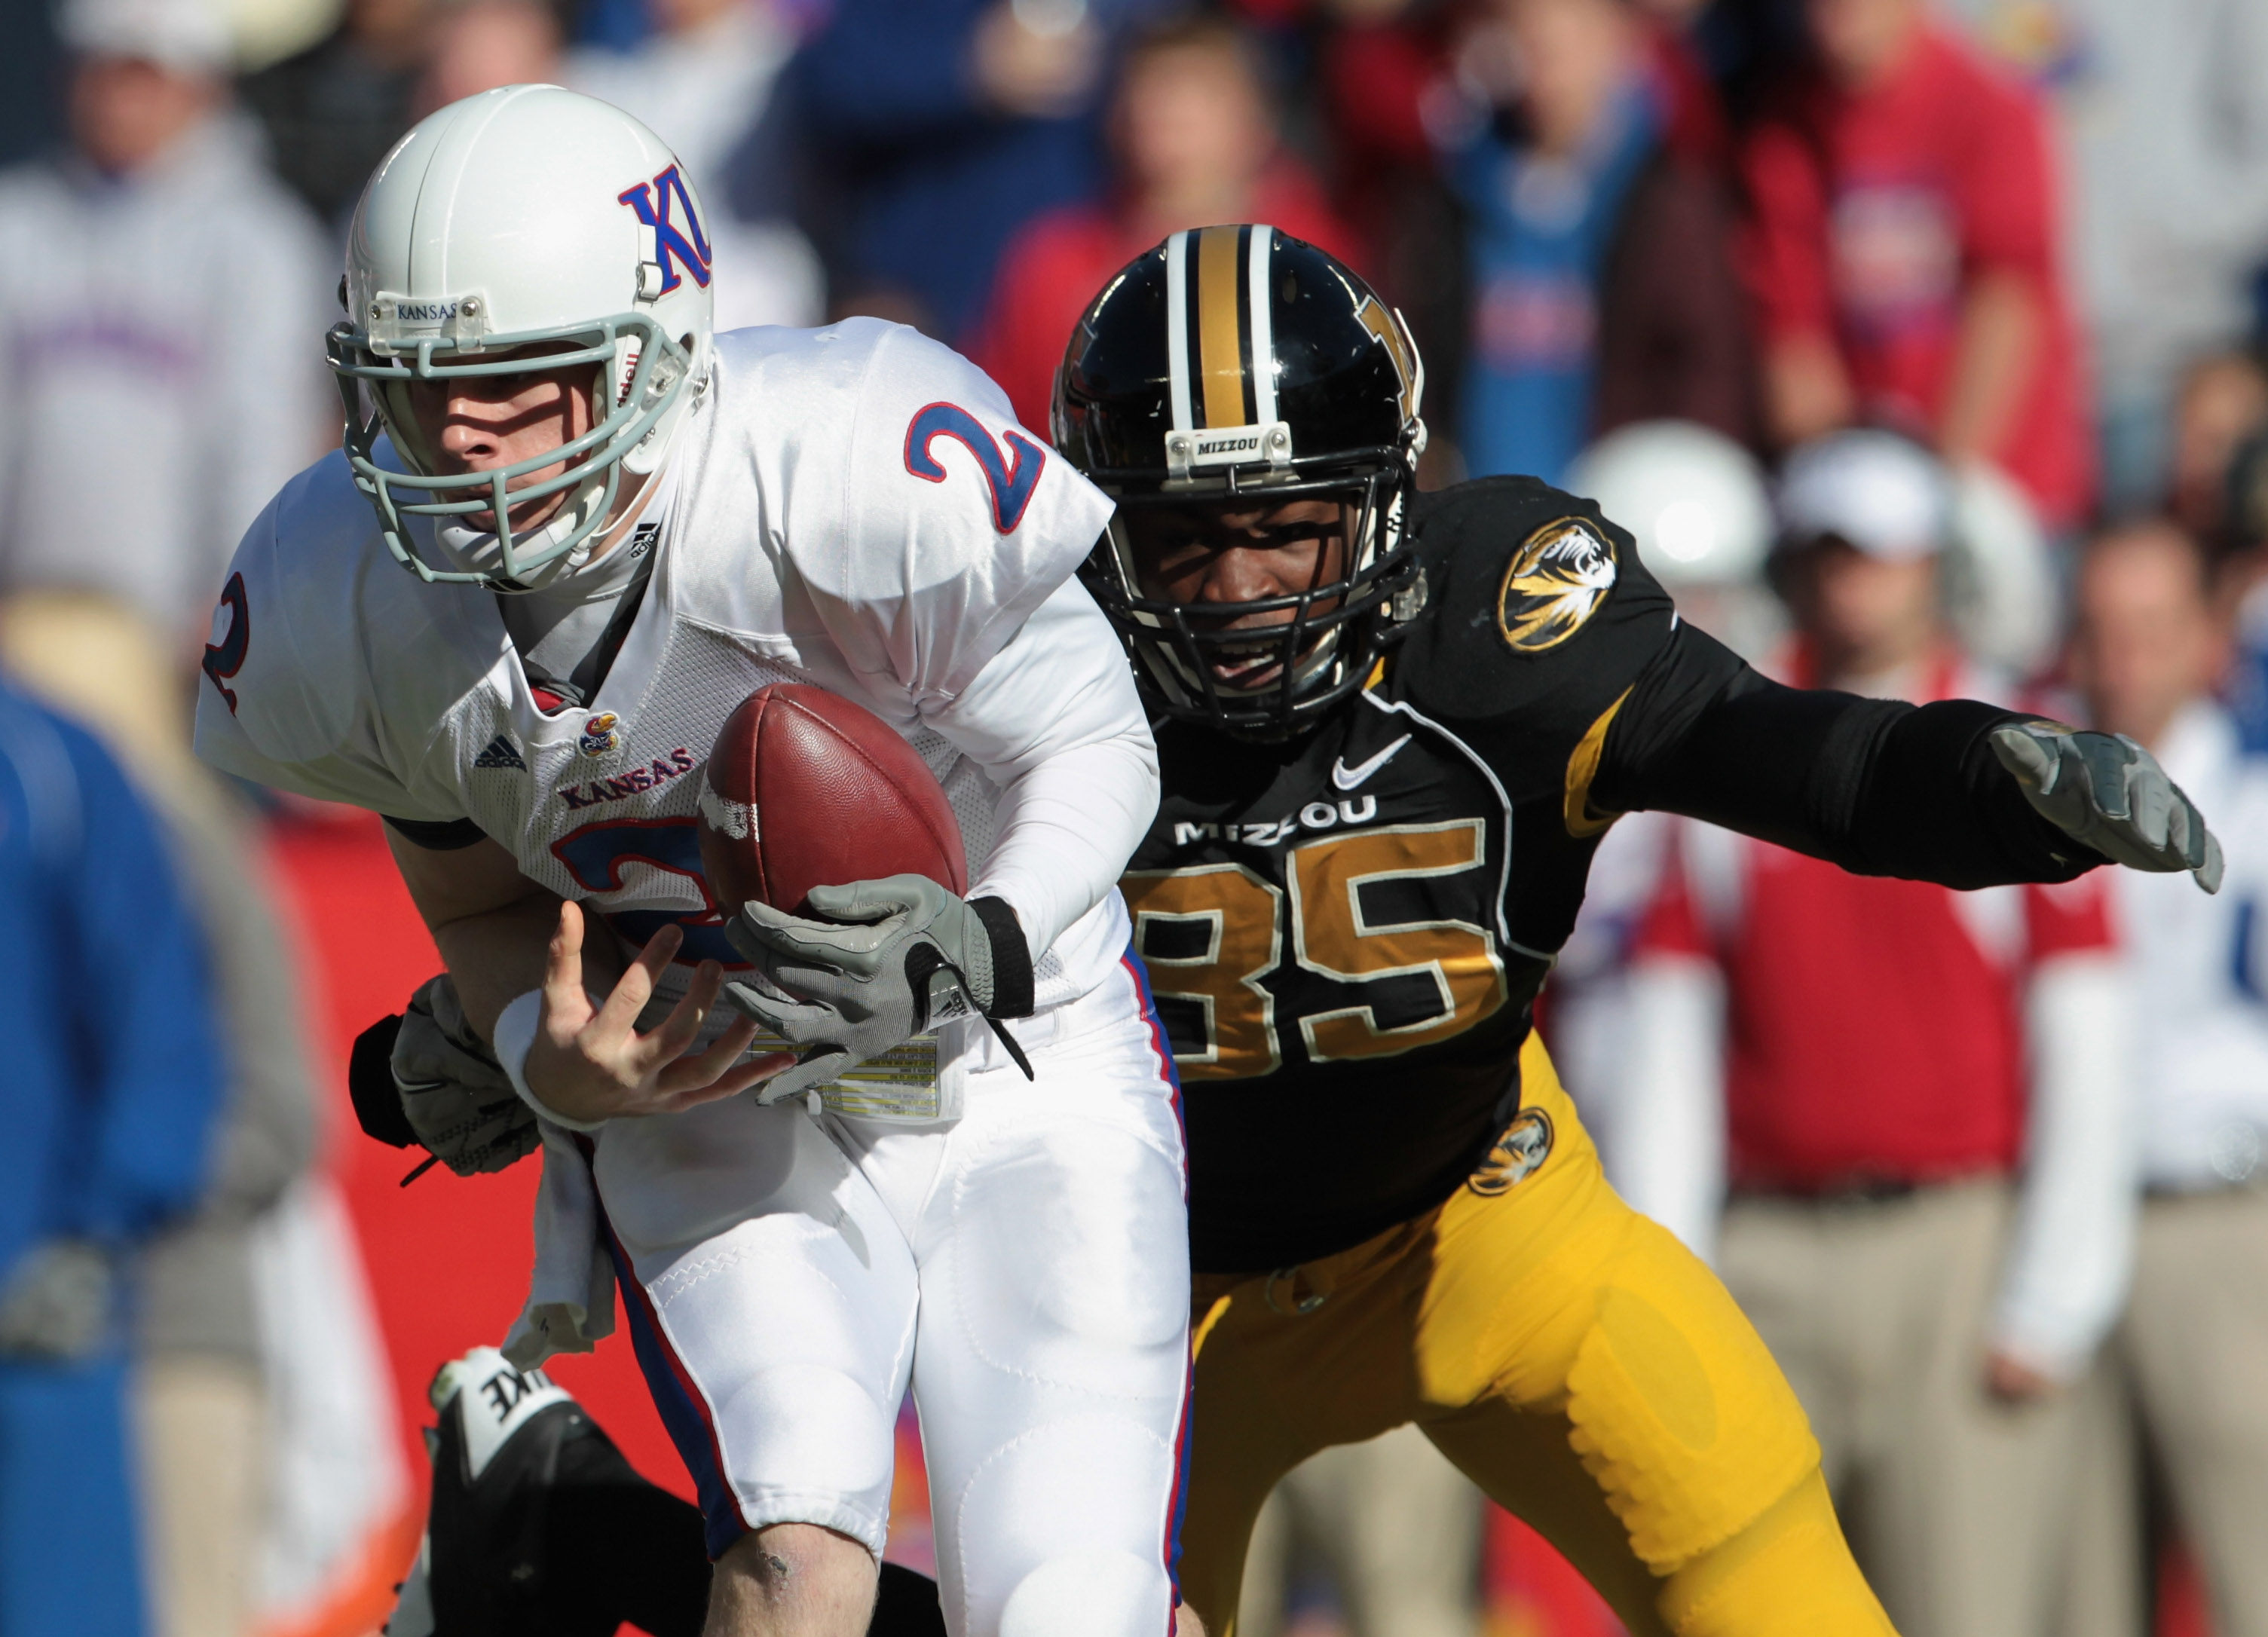 KANSAS CITY, MO - NOVEMBER 27:  Quarterback Jordan Webb #2 of the Kansas Jayhawks is sacked by Aldon Smith #85 of the Missouri Tigers during the game on November 27, 2010 at Arrowhead Stadium in Kansas City, Missouri.  (Photo by Jamie Squire/Getty Images)